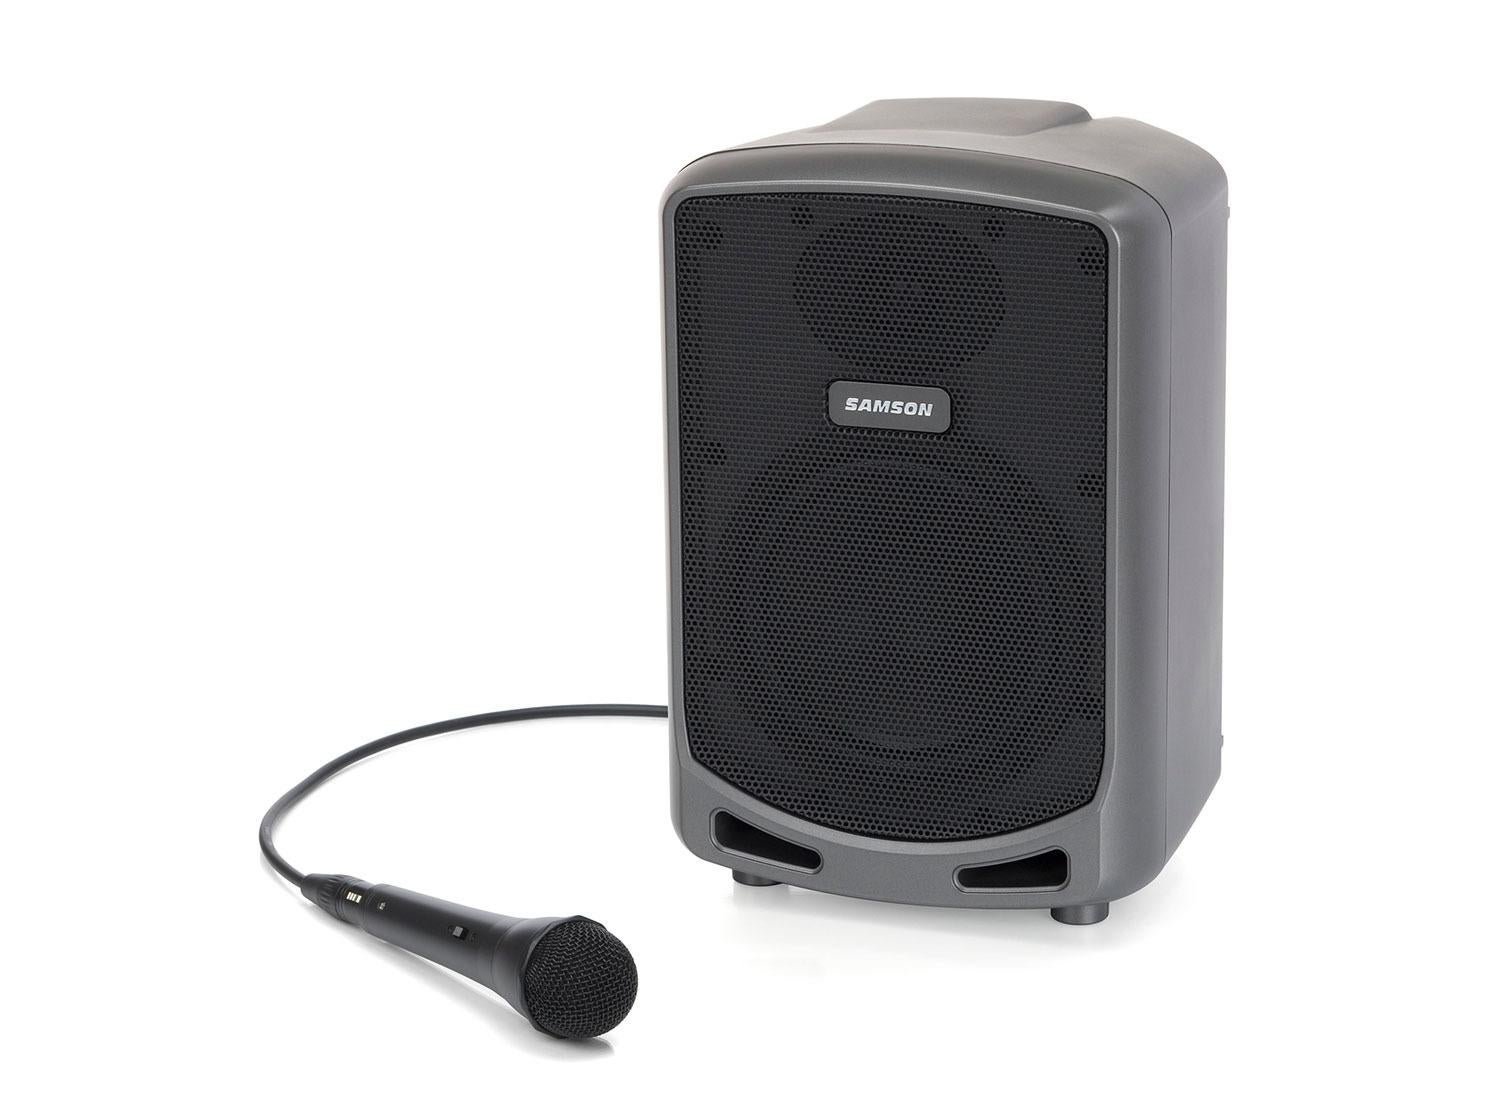 Samson Expediton Express+ Rechargeable PA System